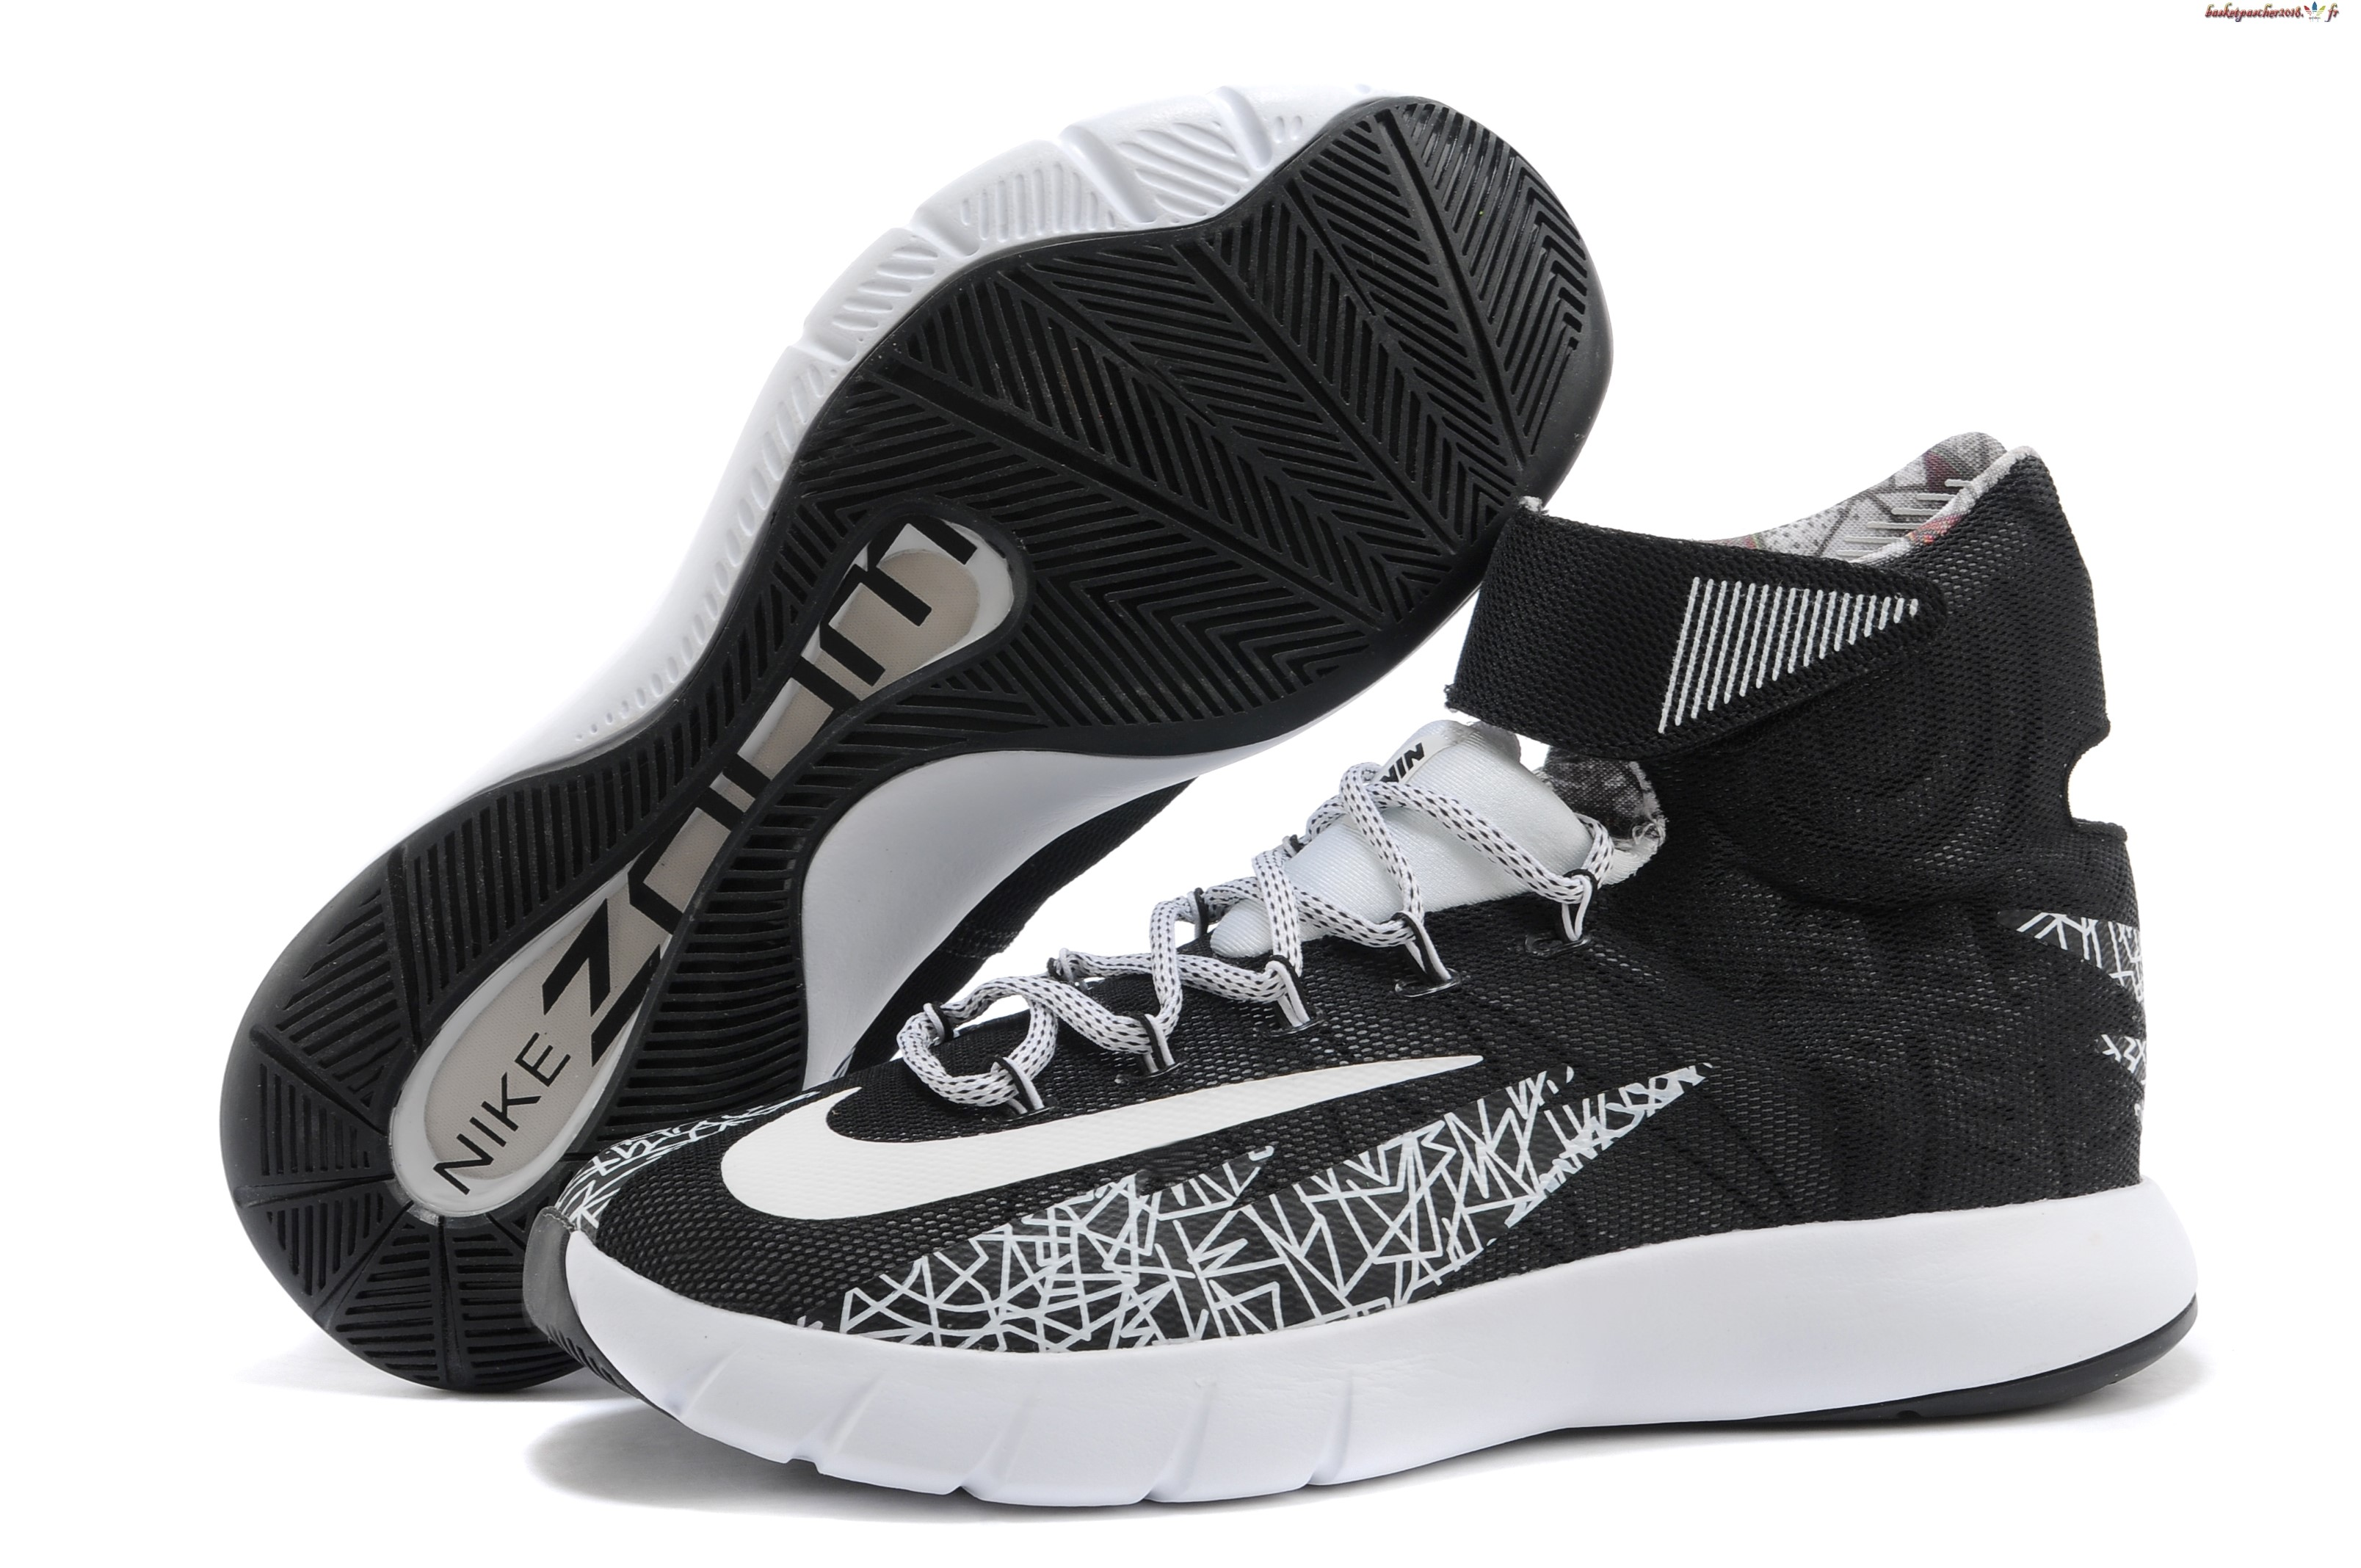 Vente Chaude Chaussures De Basketball Homme Nike Zoom Hyperrev Kyrie Irving Noir Blanc Pas Cher